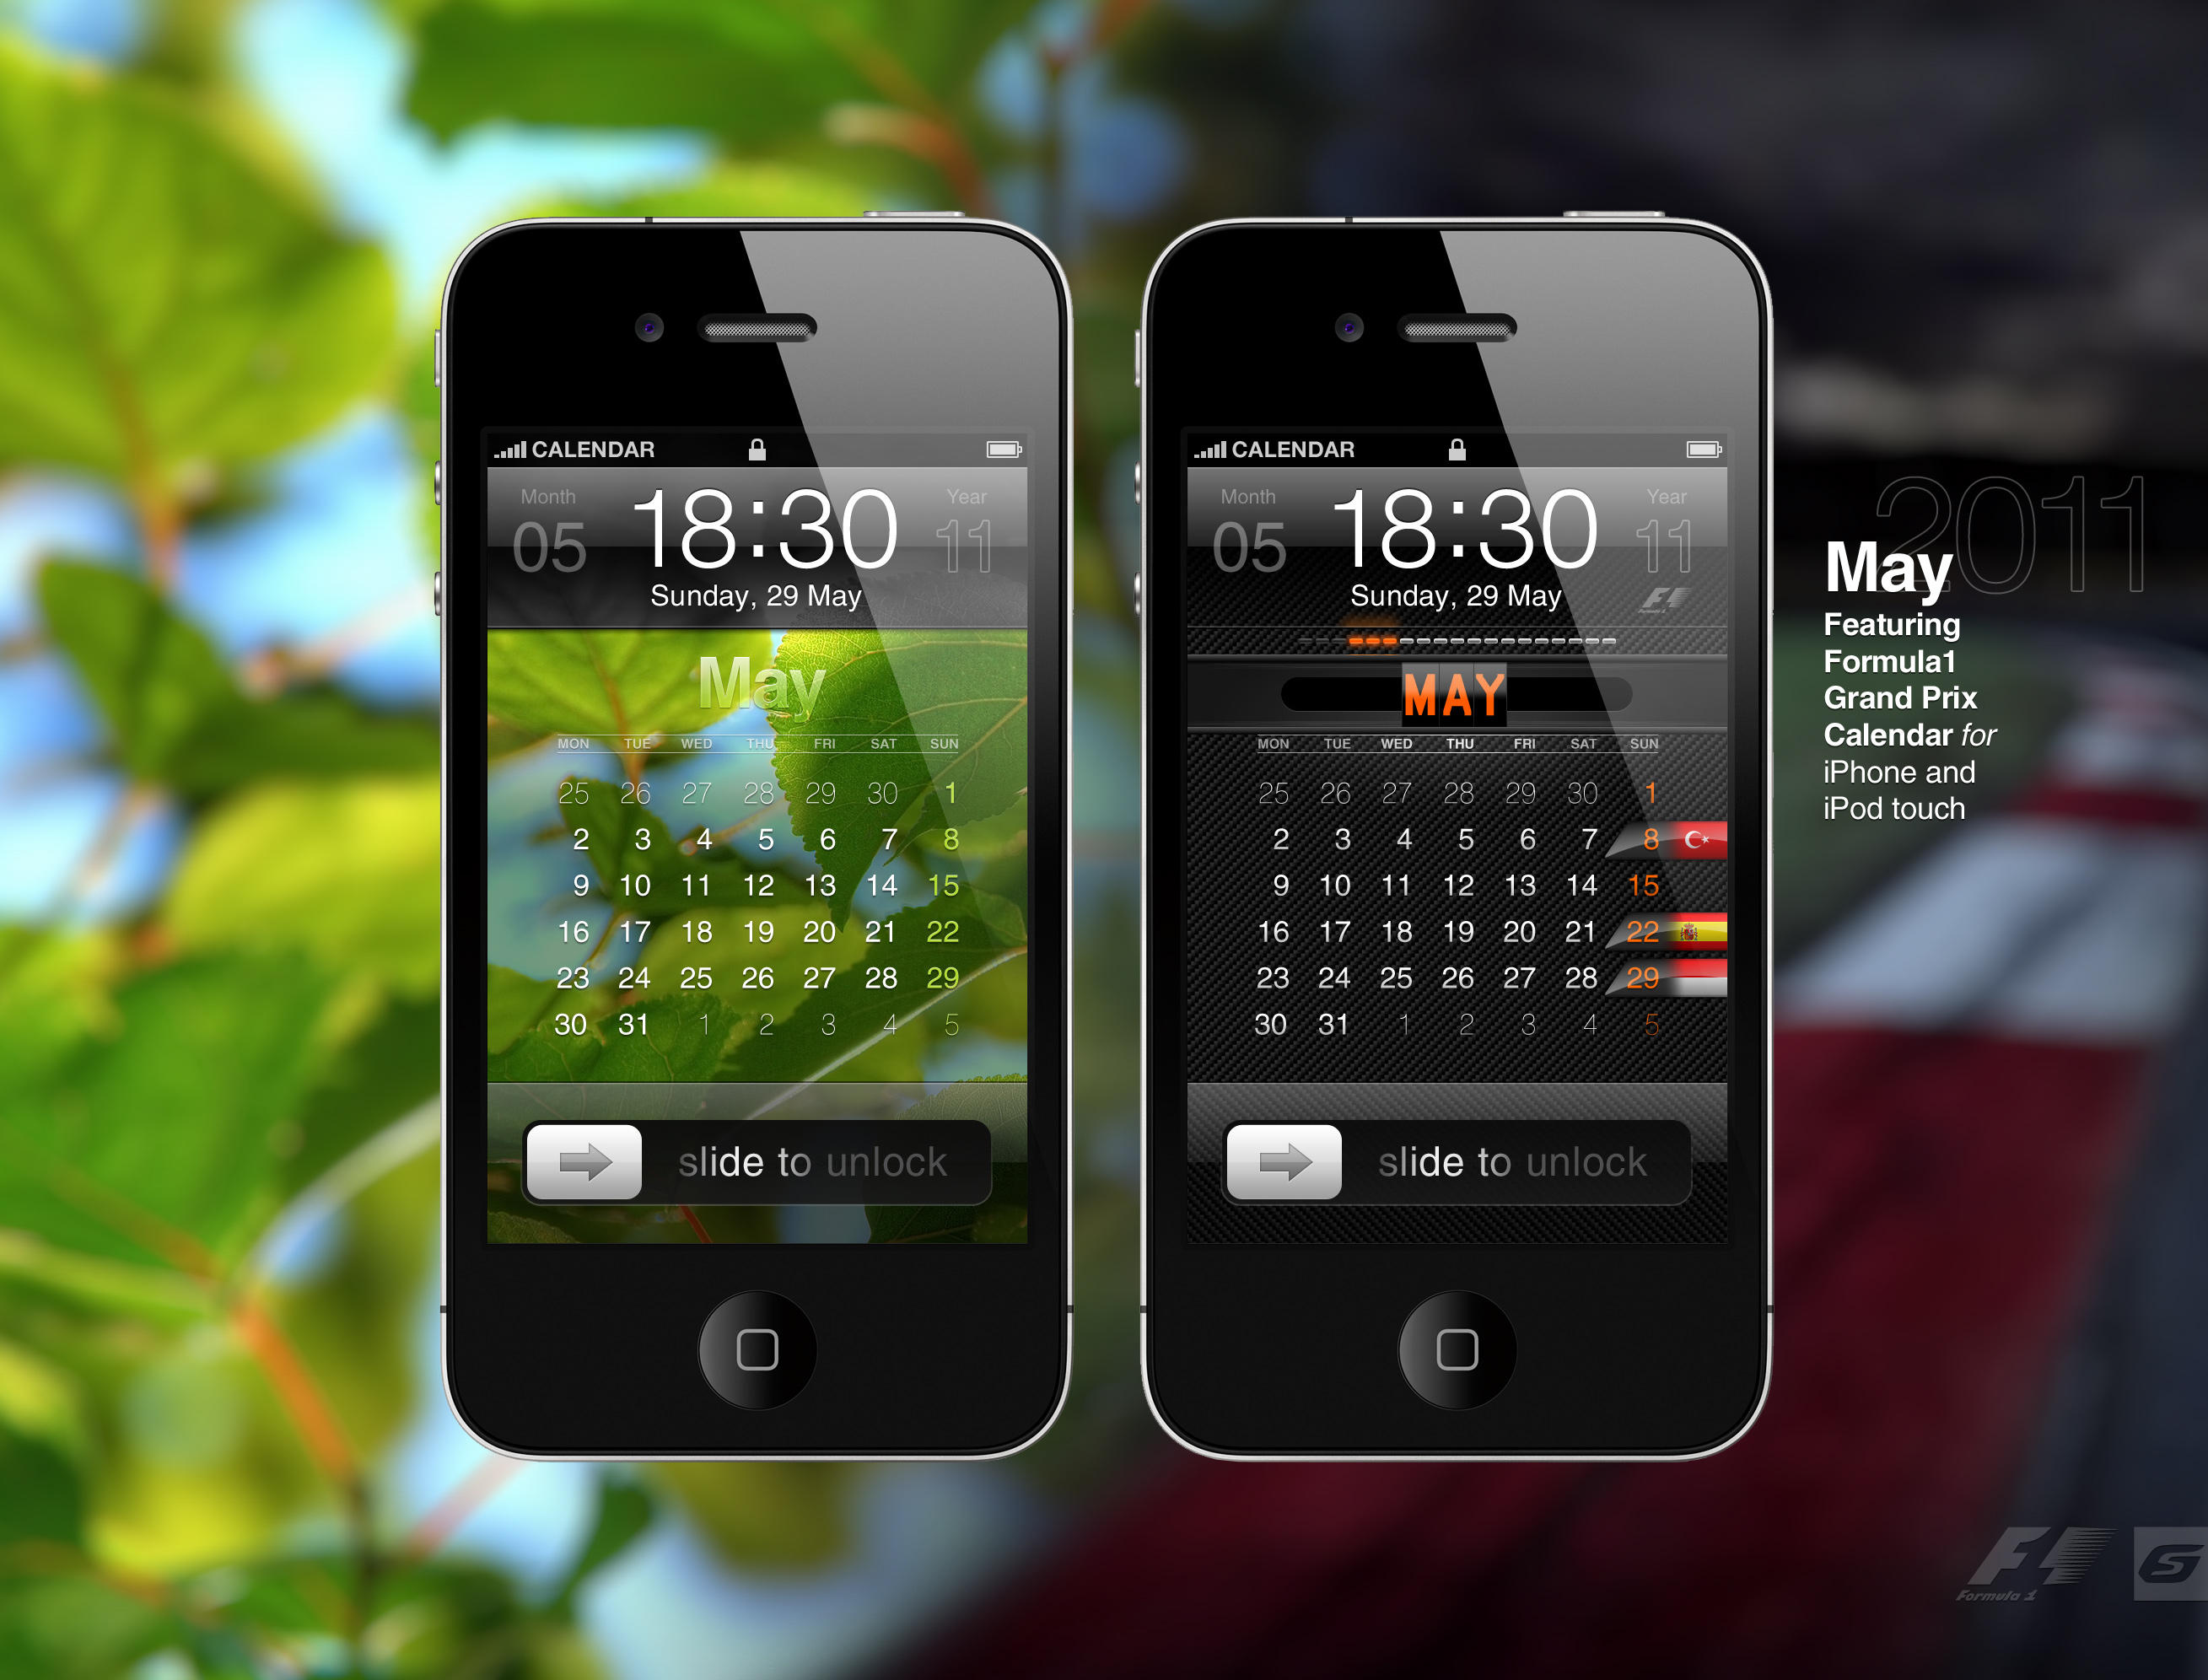 May 2011 + F1 by 5-G